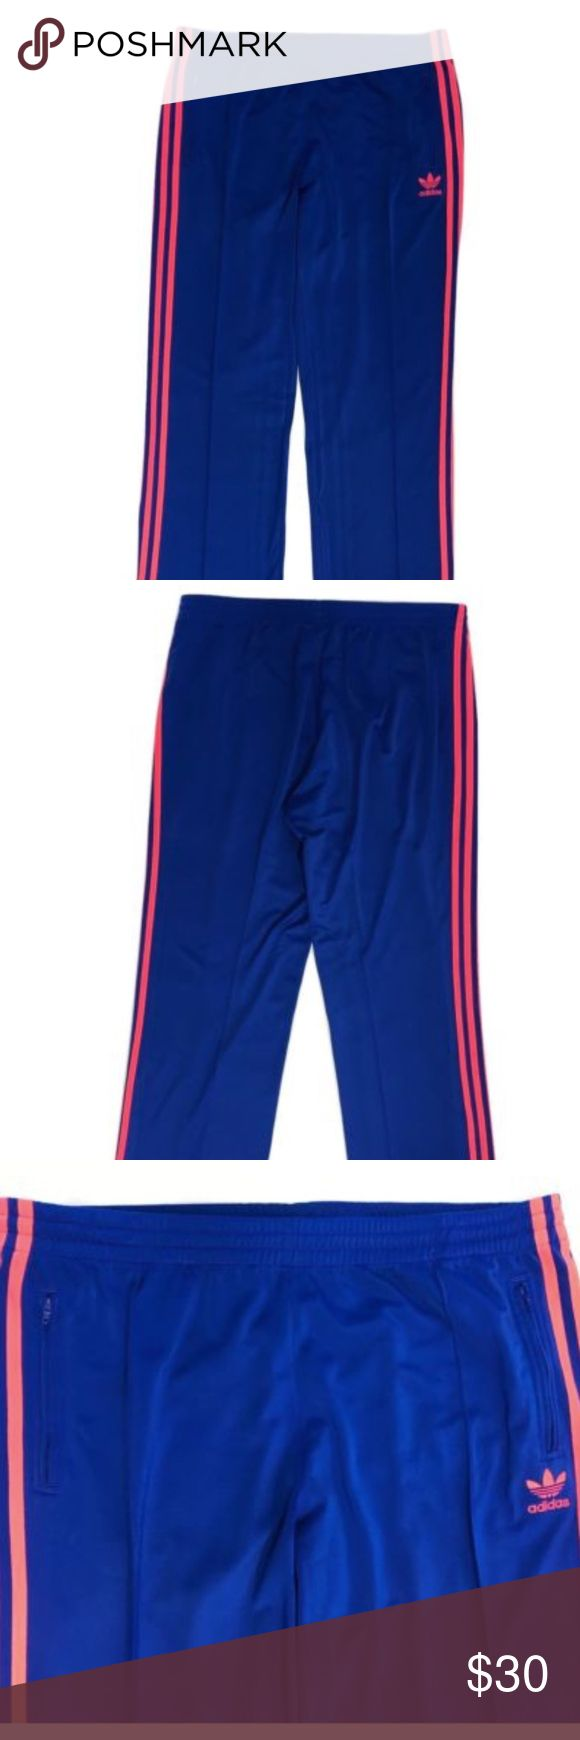 """Adidas Track Pants Trefoil Blue Pink Wide Leg Adidas Women's Track Pants XL Blue Pink Wide Leg Firebird Trefoil Warm Up Sweats  In Excellent Used Condition- no rips, tears, holes- Stored in a clean, smoke free home.  Measurements laying flat- Waist- 18"""" Inseam- 31"""" Rise-12"""" adidas Pants Track Pants & Joggers"""